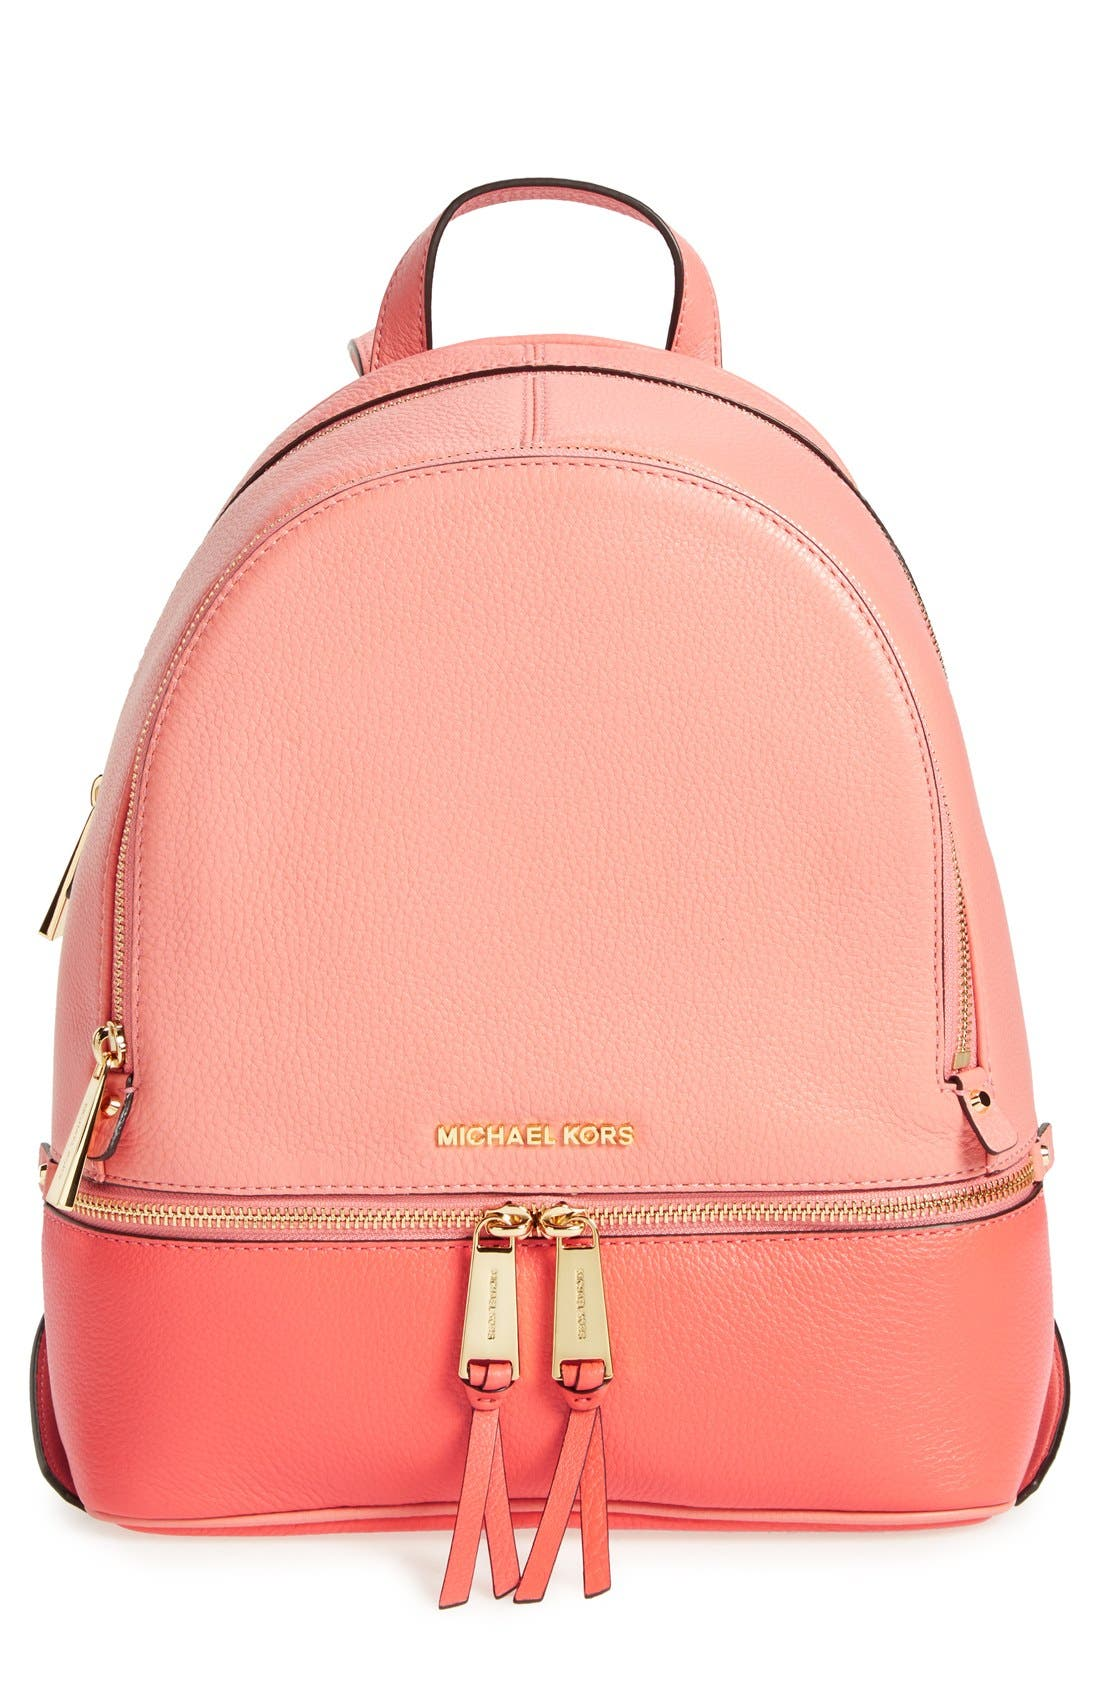 Main Image - MICHAEL Michael Kors 'Small Rhea' Colorblock Leather Backpack